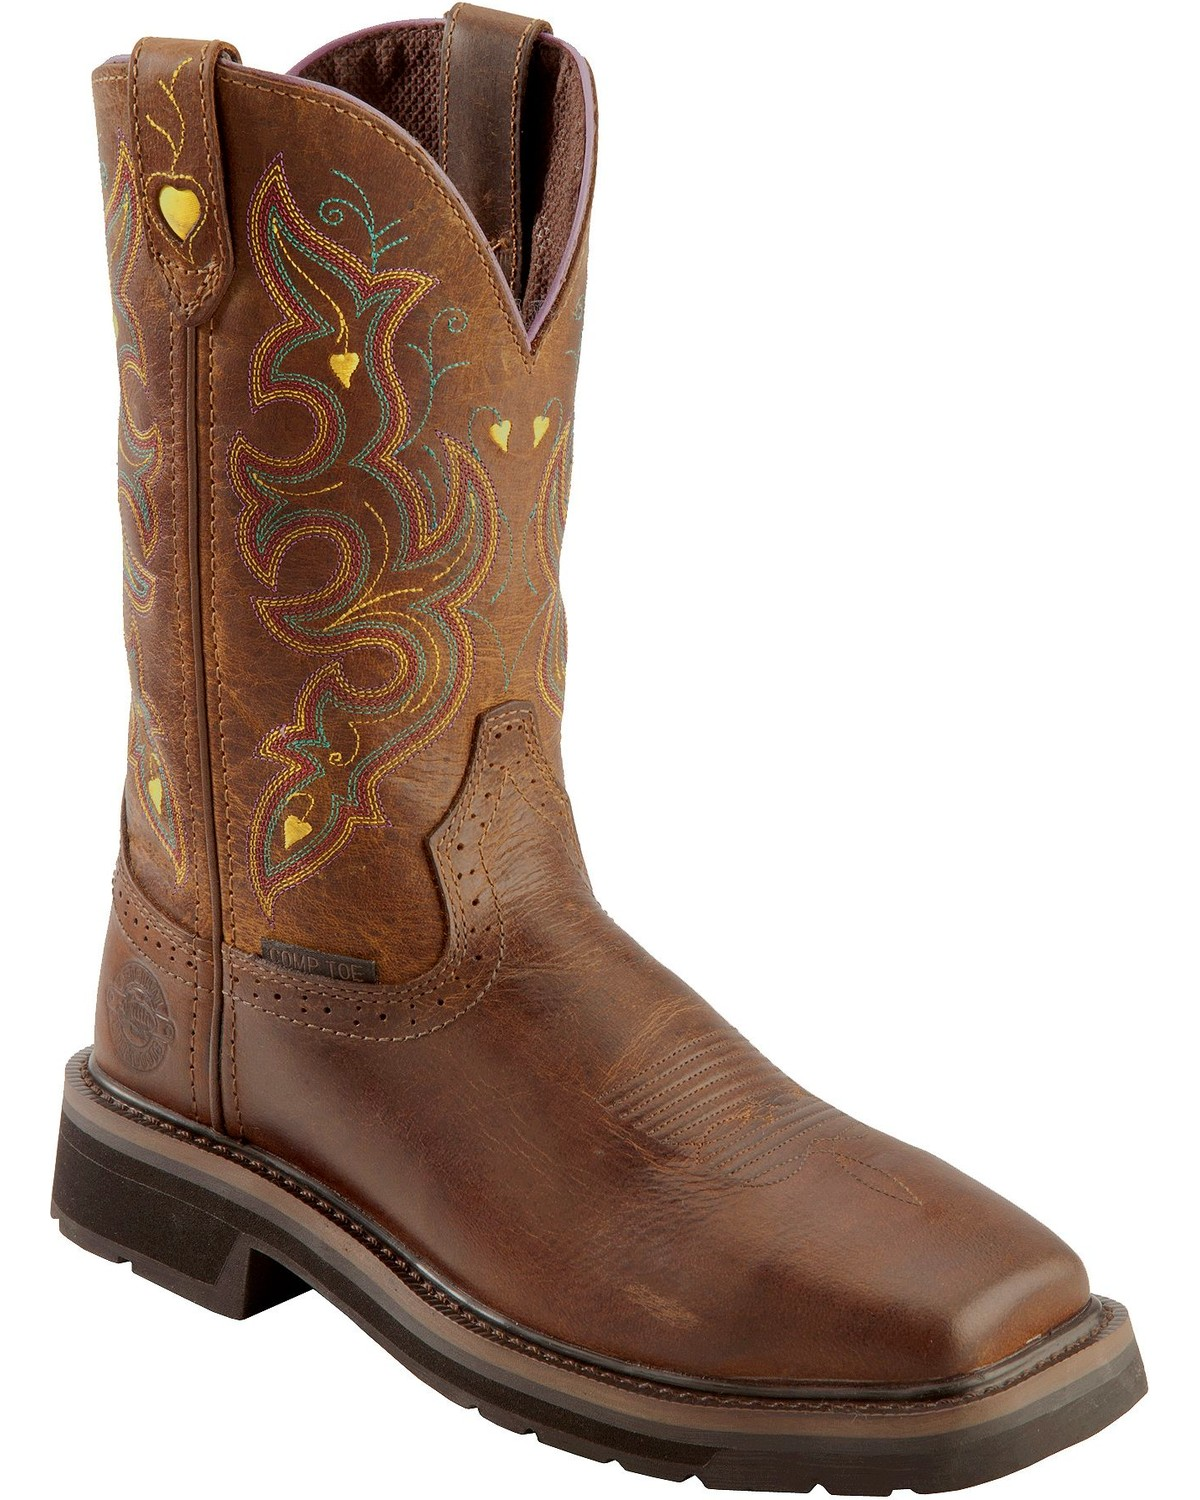 Justin Women's Pull-On Work Boots